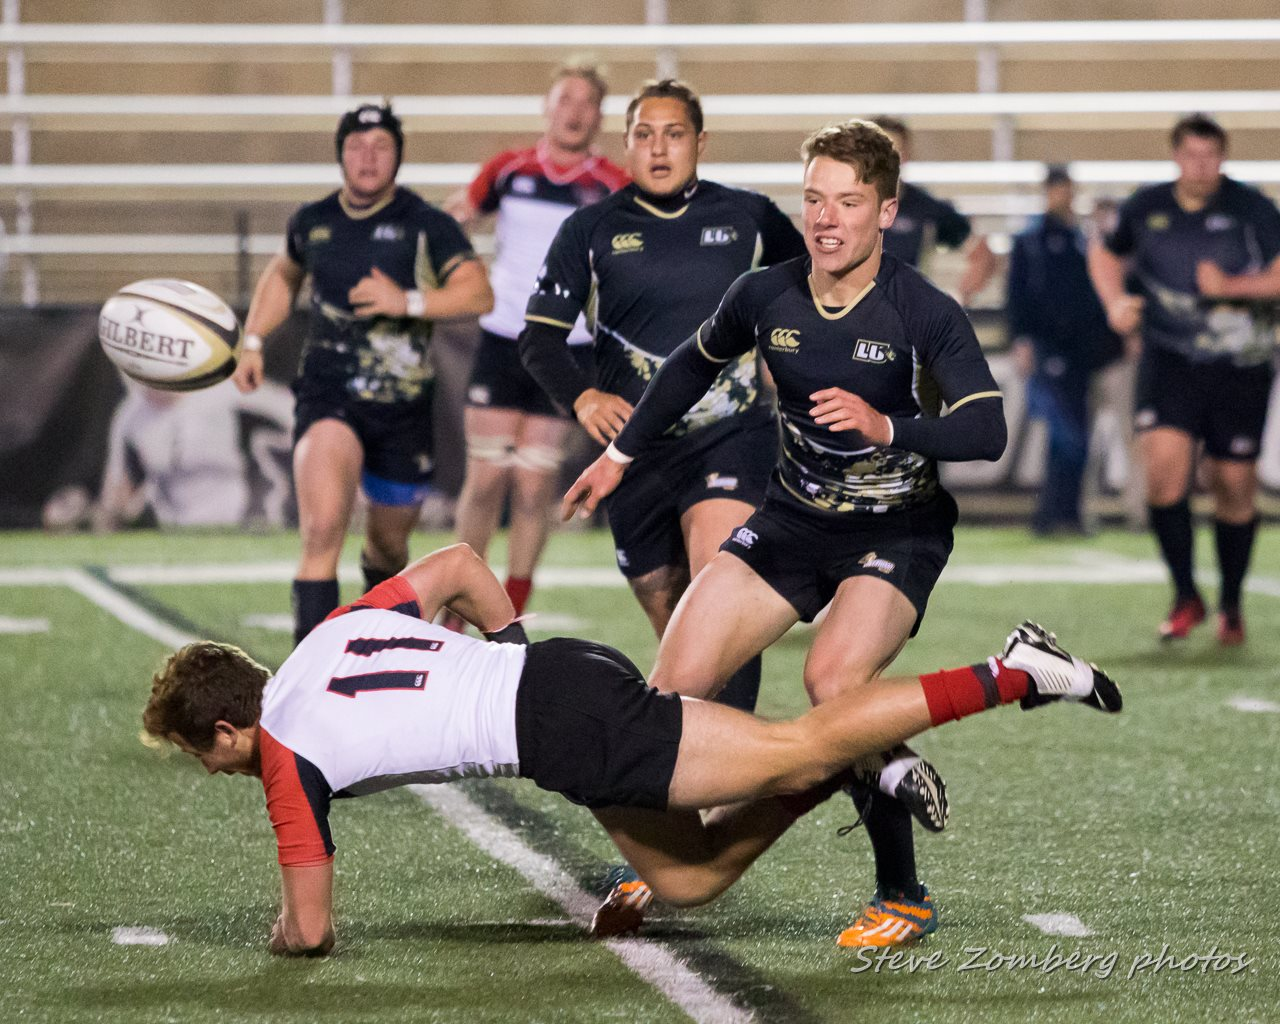 Lindenwood v Davenport Labry Shield rugby game March 11 2017. Steven Zomberg photo.